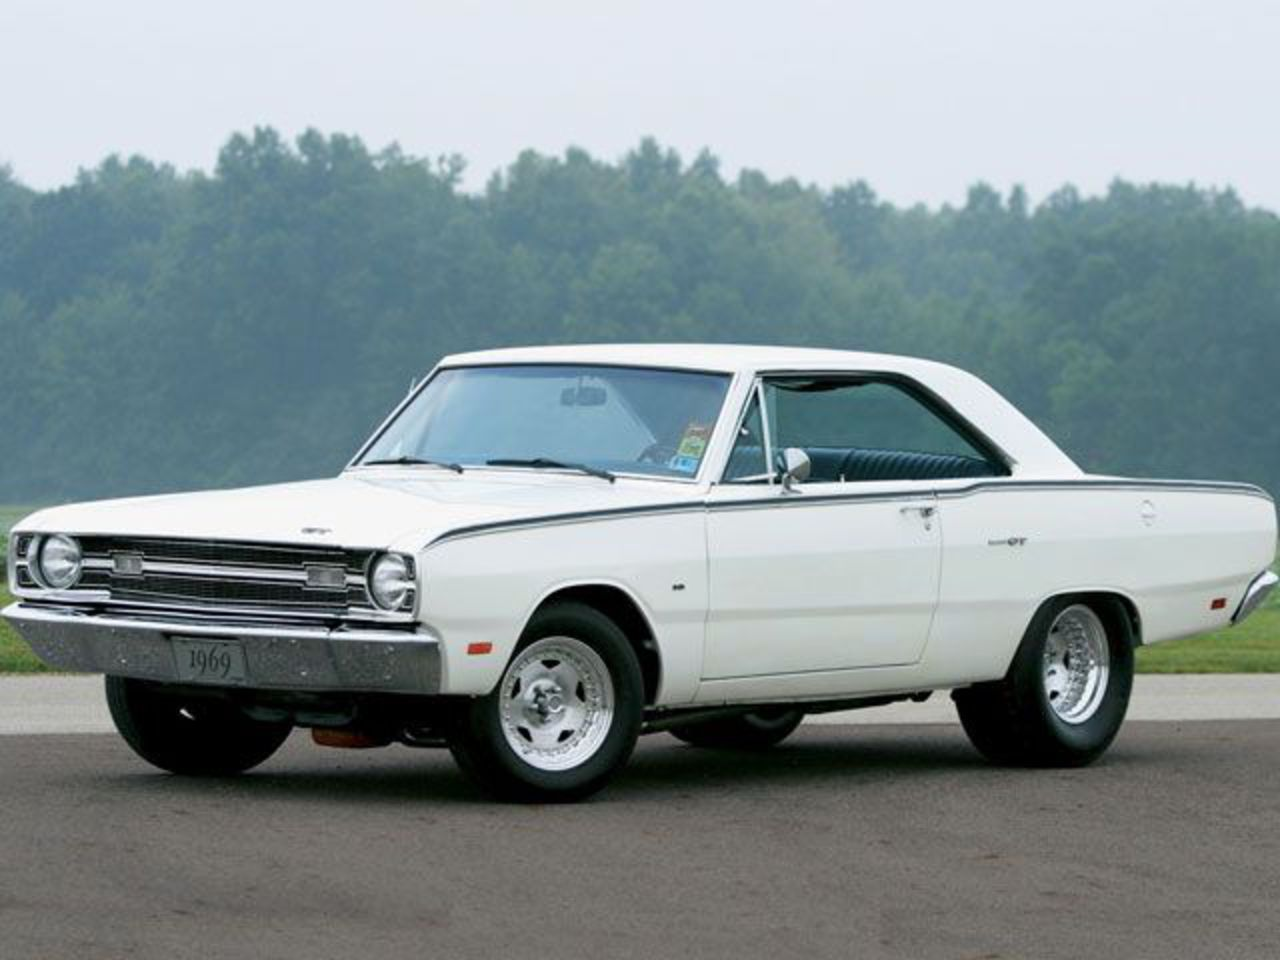 1969 Dodge Dart Gt Muscle Car Driver Side Front View